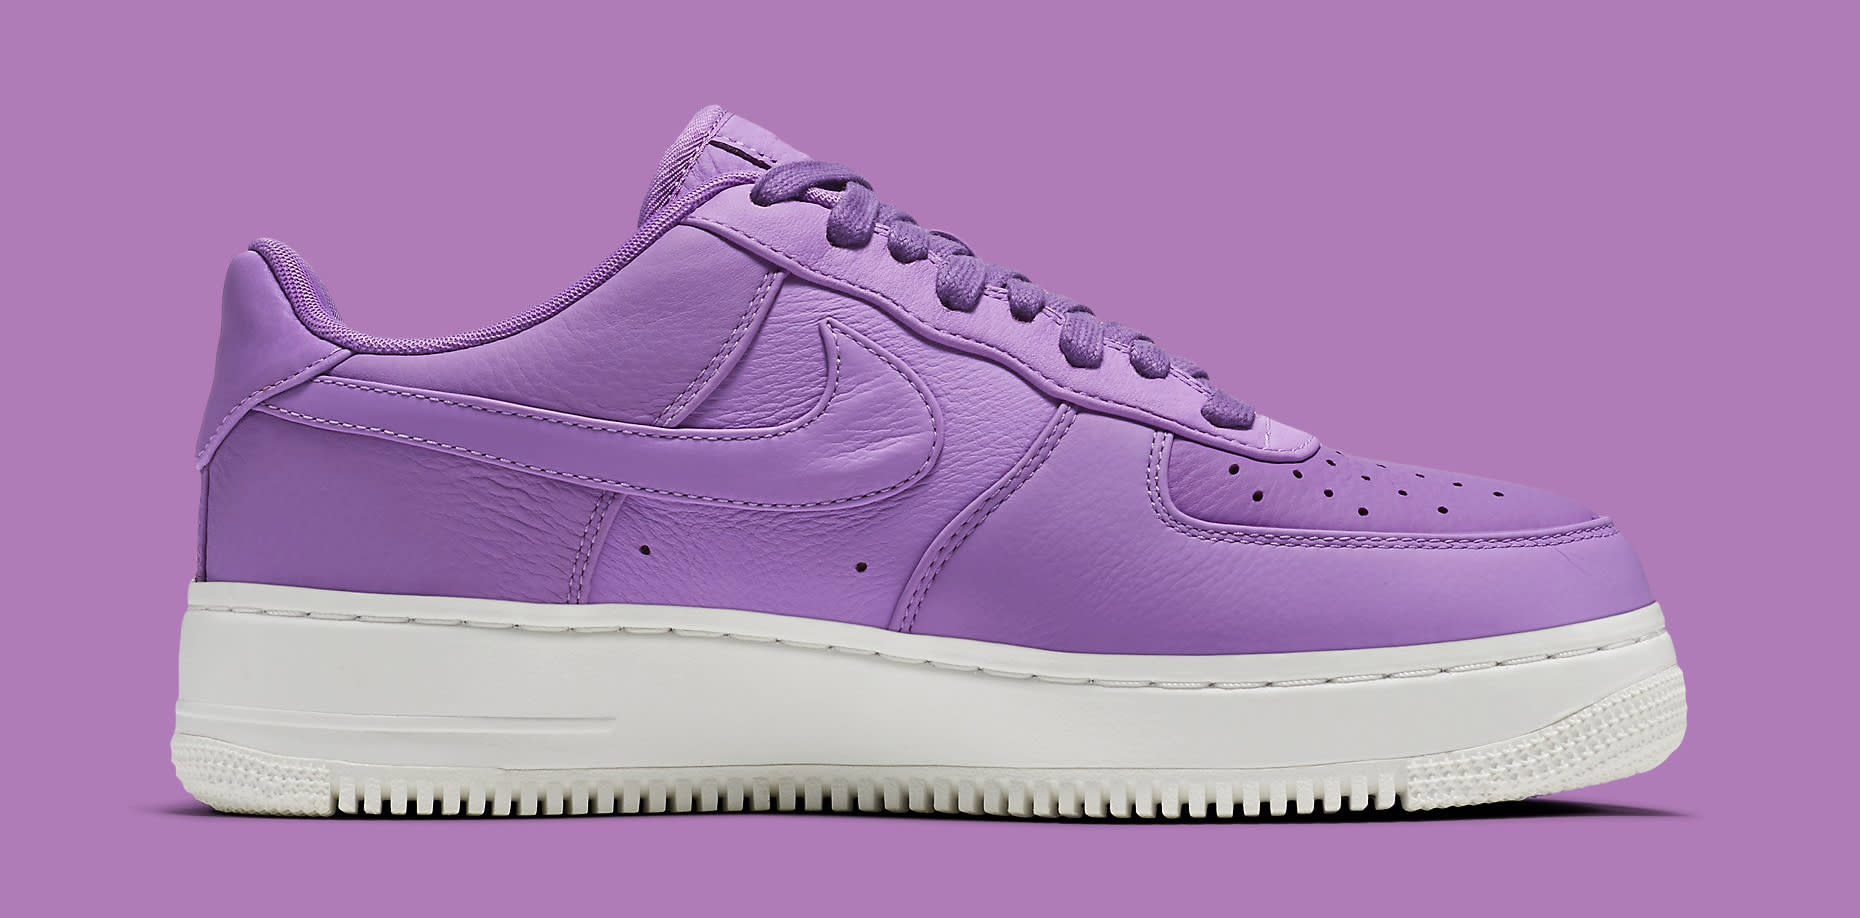 Nike Air Force 1 Low Purple Stardust 905618-500 Medial